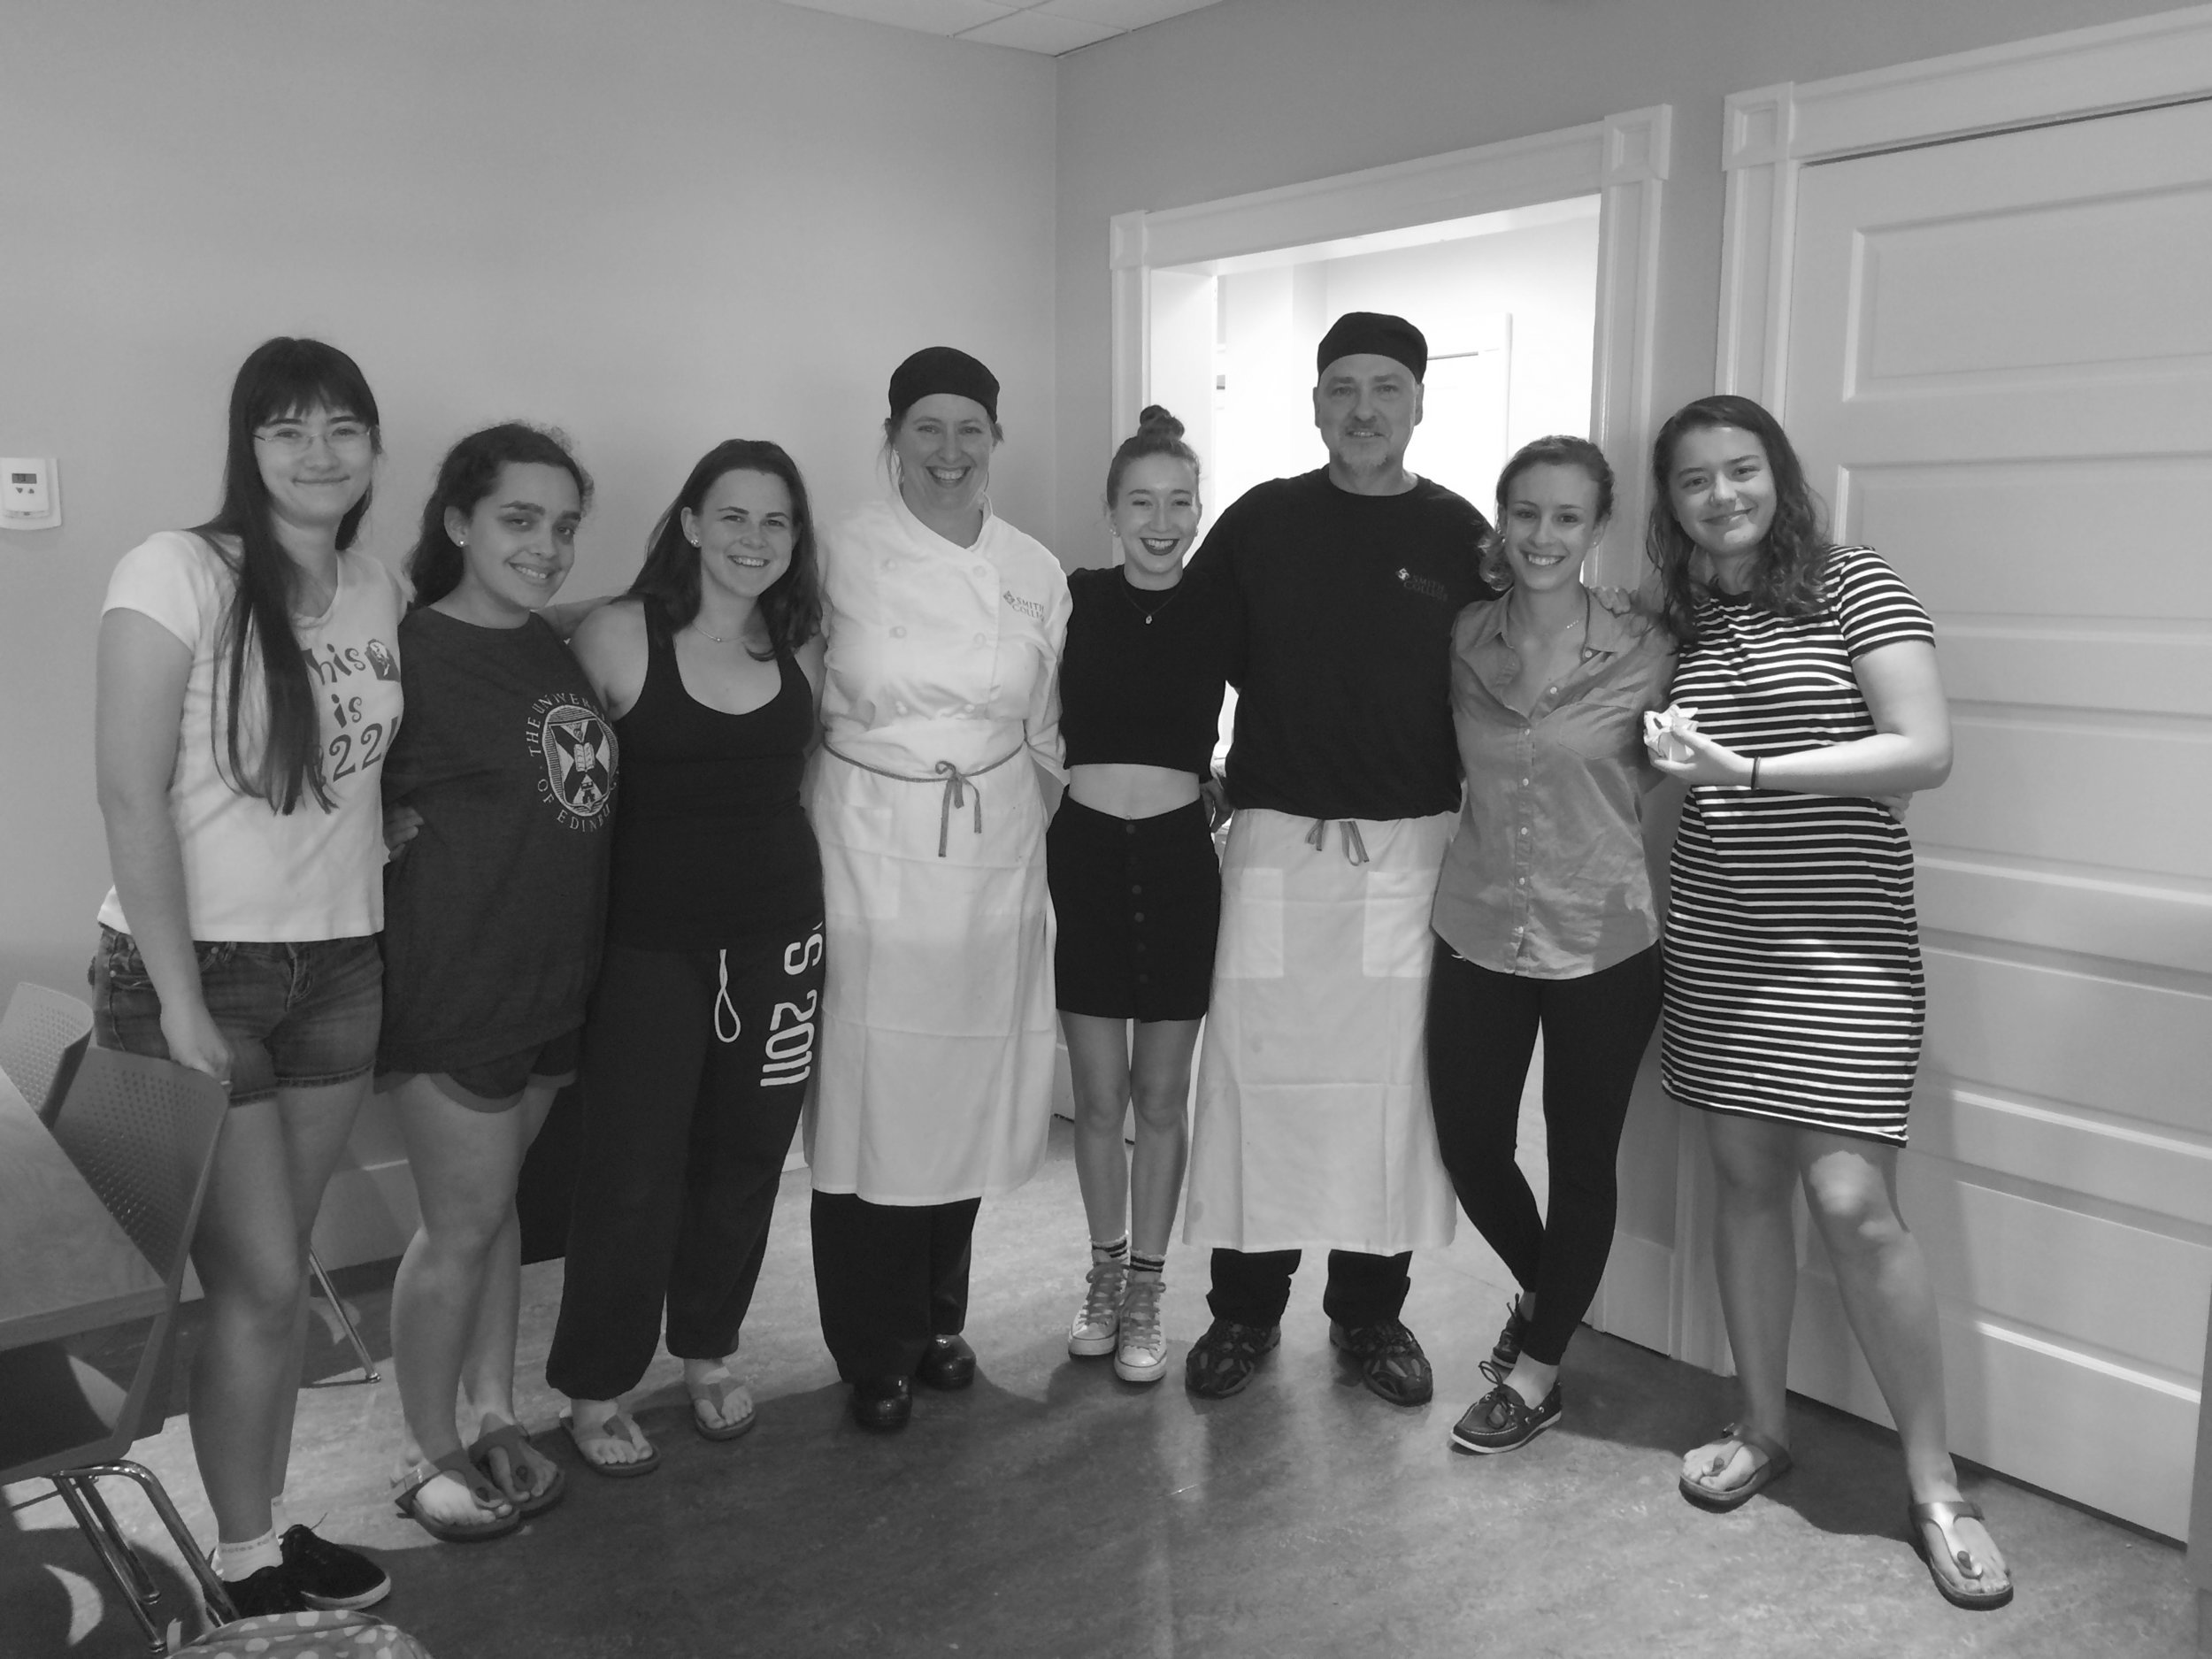 Photo by Veronica Brown '16 Several gluten-free students pose in the new Dawes dining hall with chefs Lisa Seymour and Scott Rubeck.